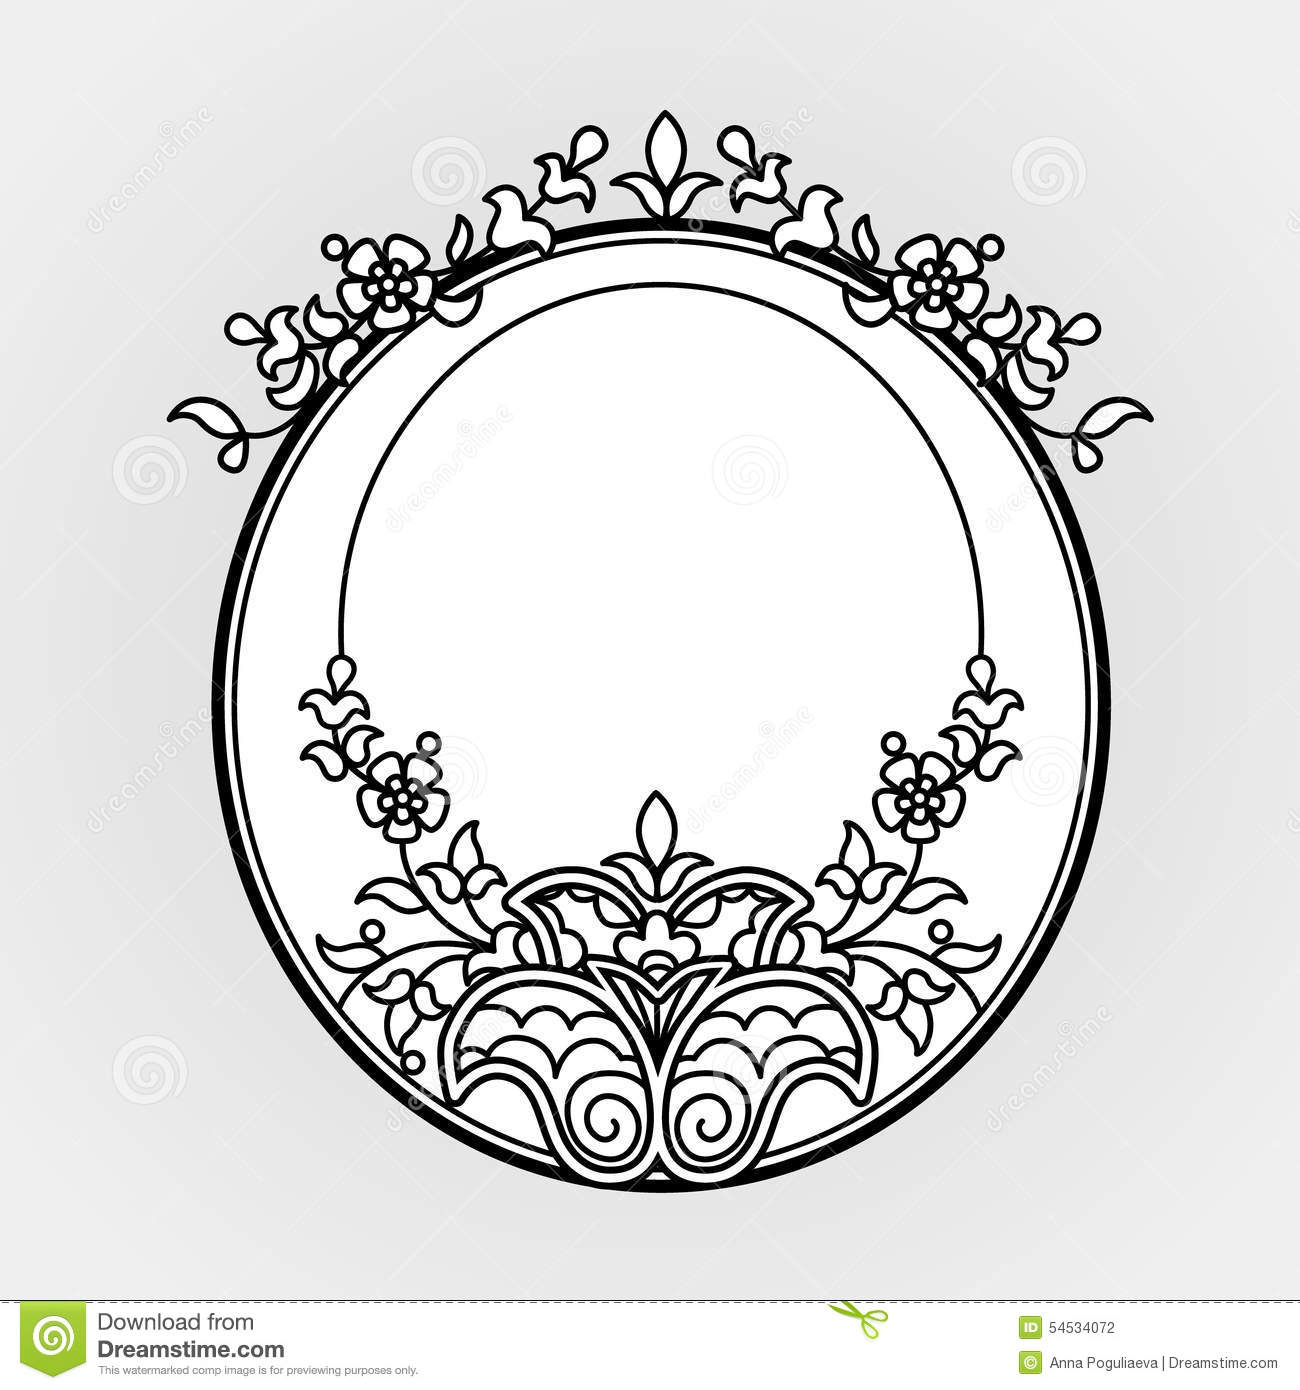 Oval Filigree Clip Art - Clipart Library •